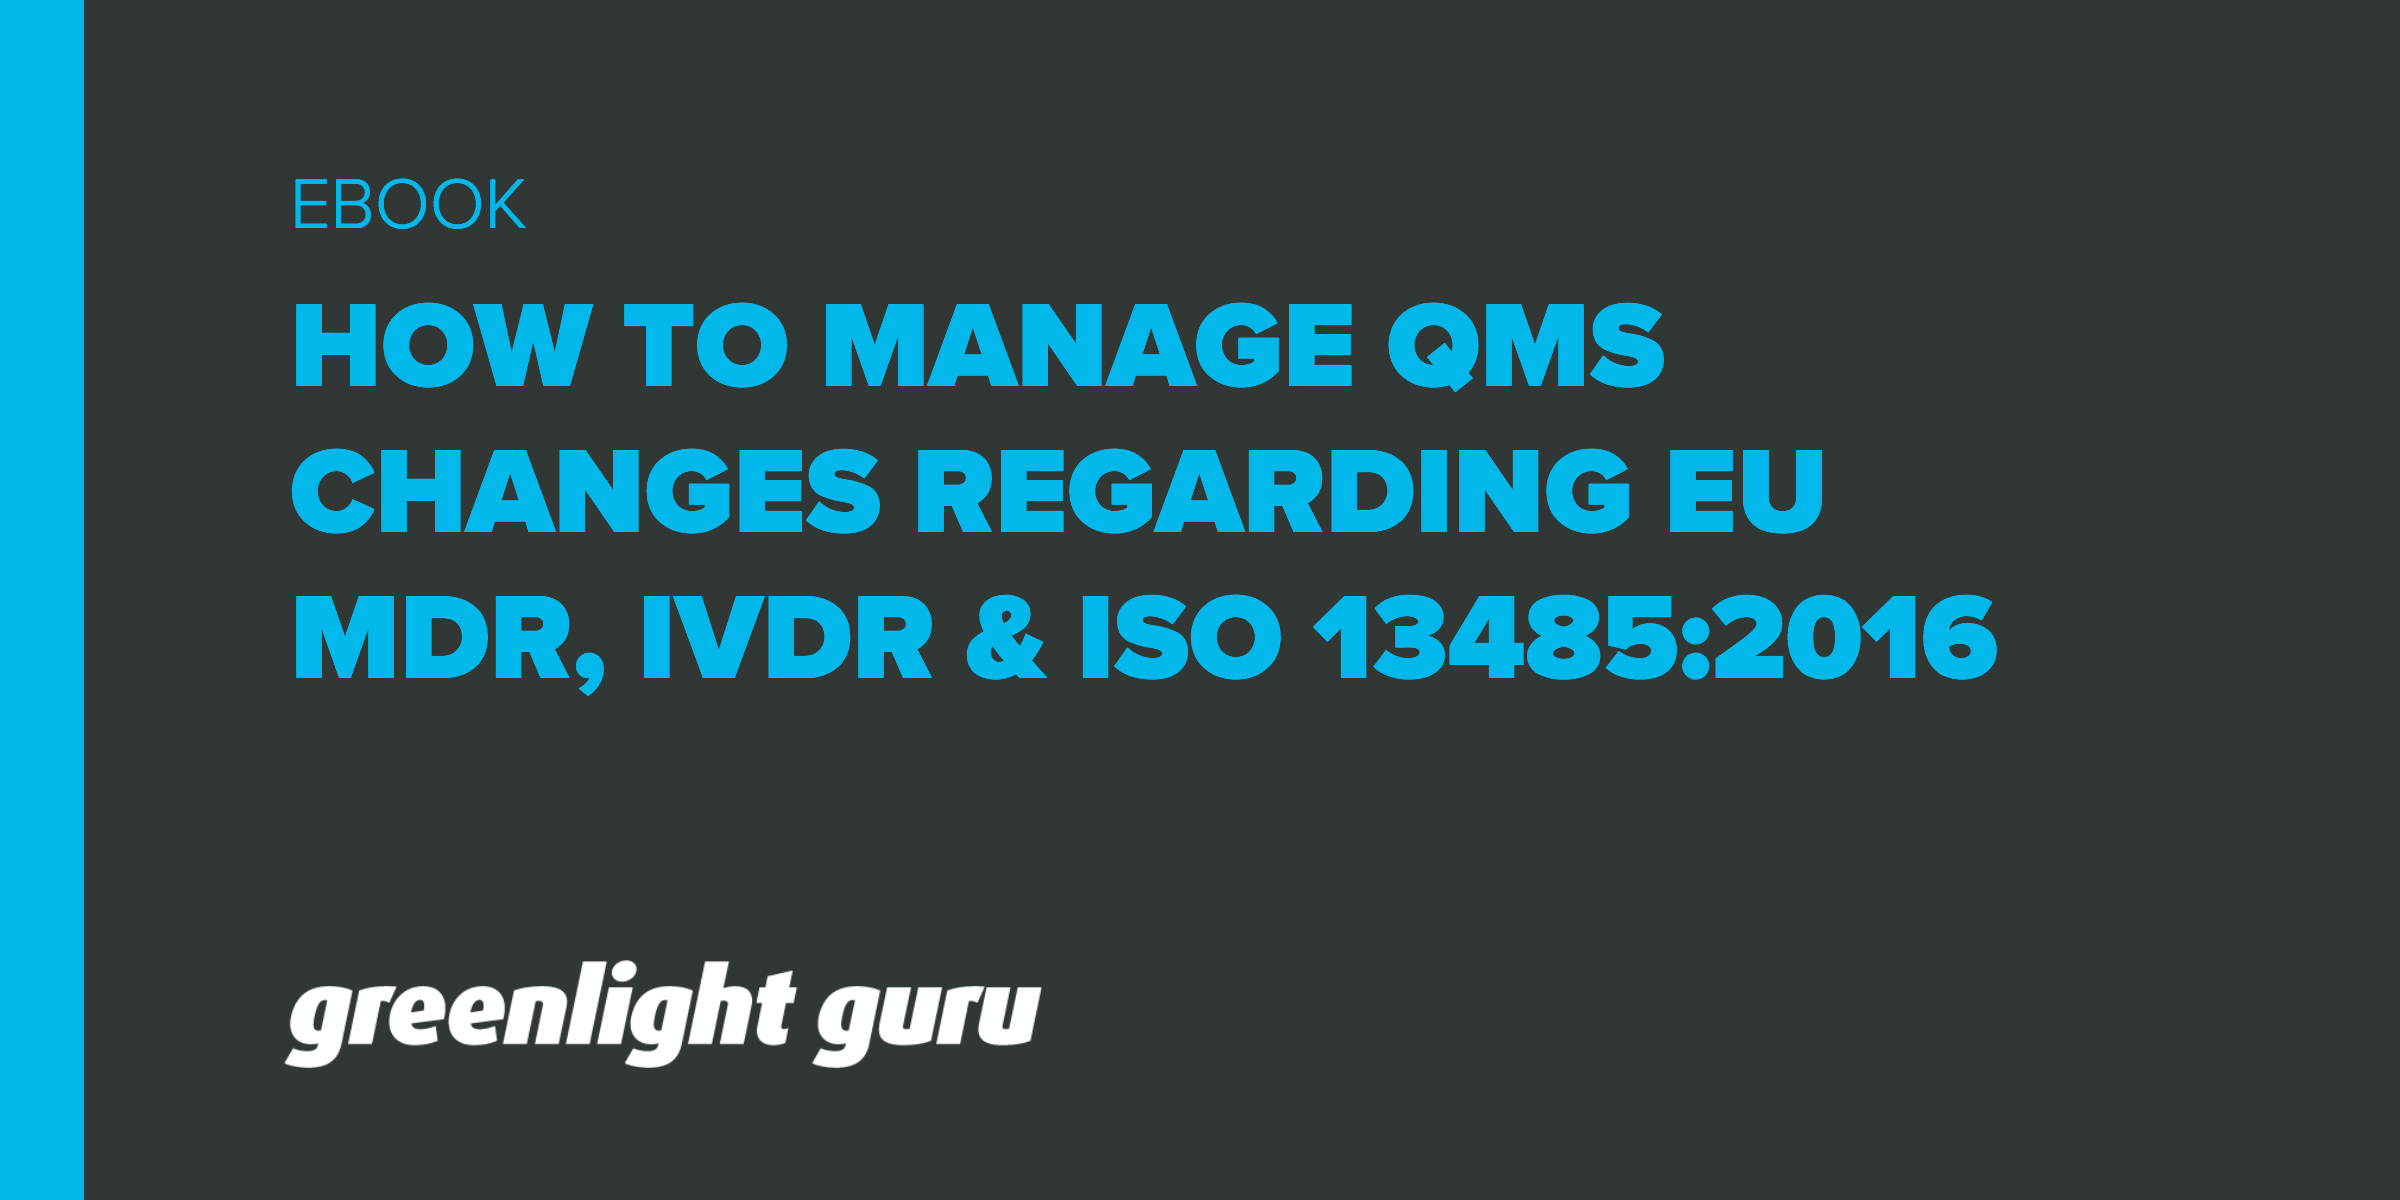 Medical device qms changes how to manage changes regarding eu mdr medical device qms changes how to manage changes regarding eu mdr ivdr iso 134852016 fandeluxe Image collections